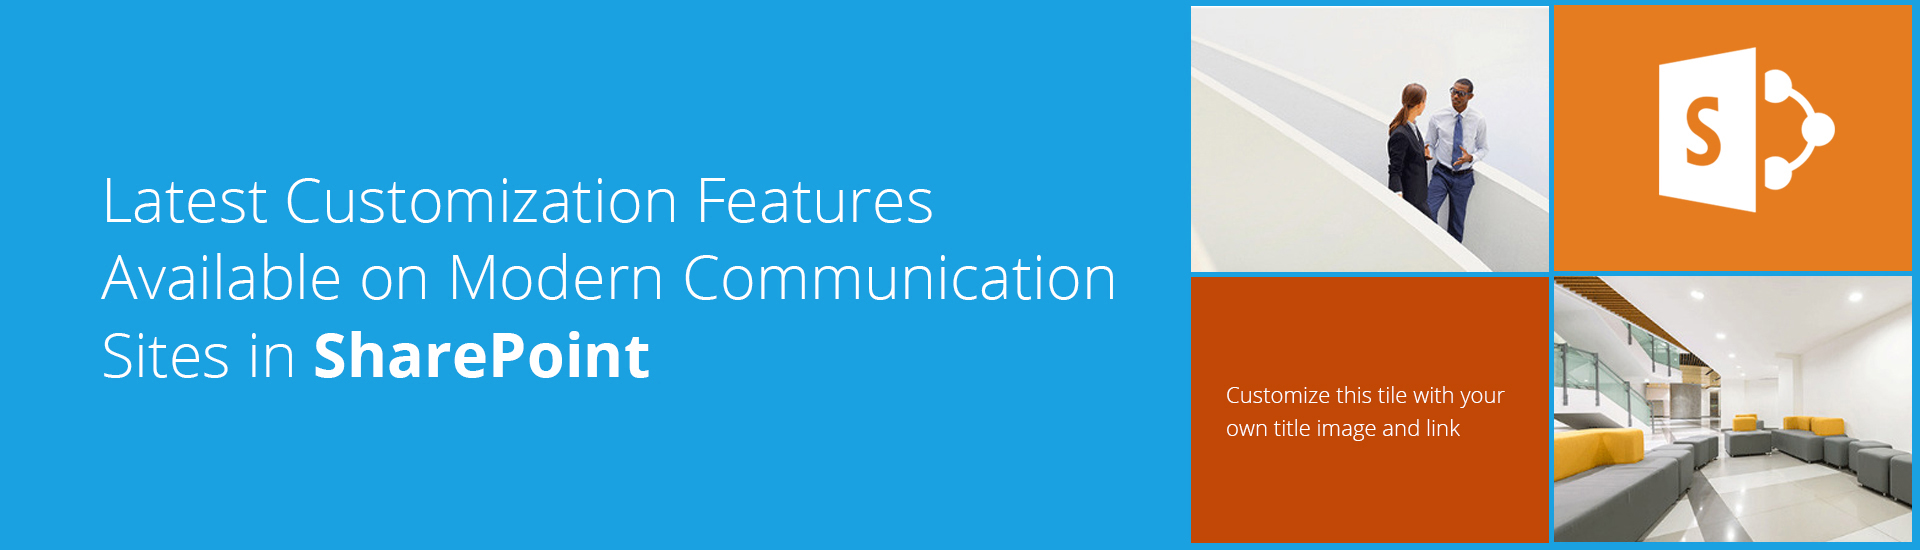 Latest features, Change Theme, Footer, Navigation, Header, SharePoint